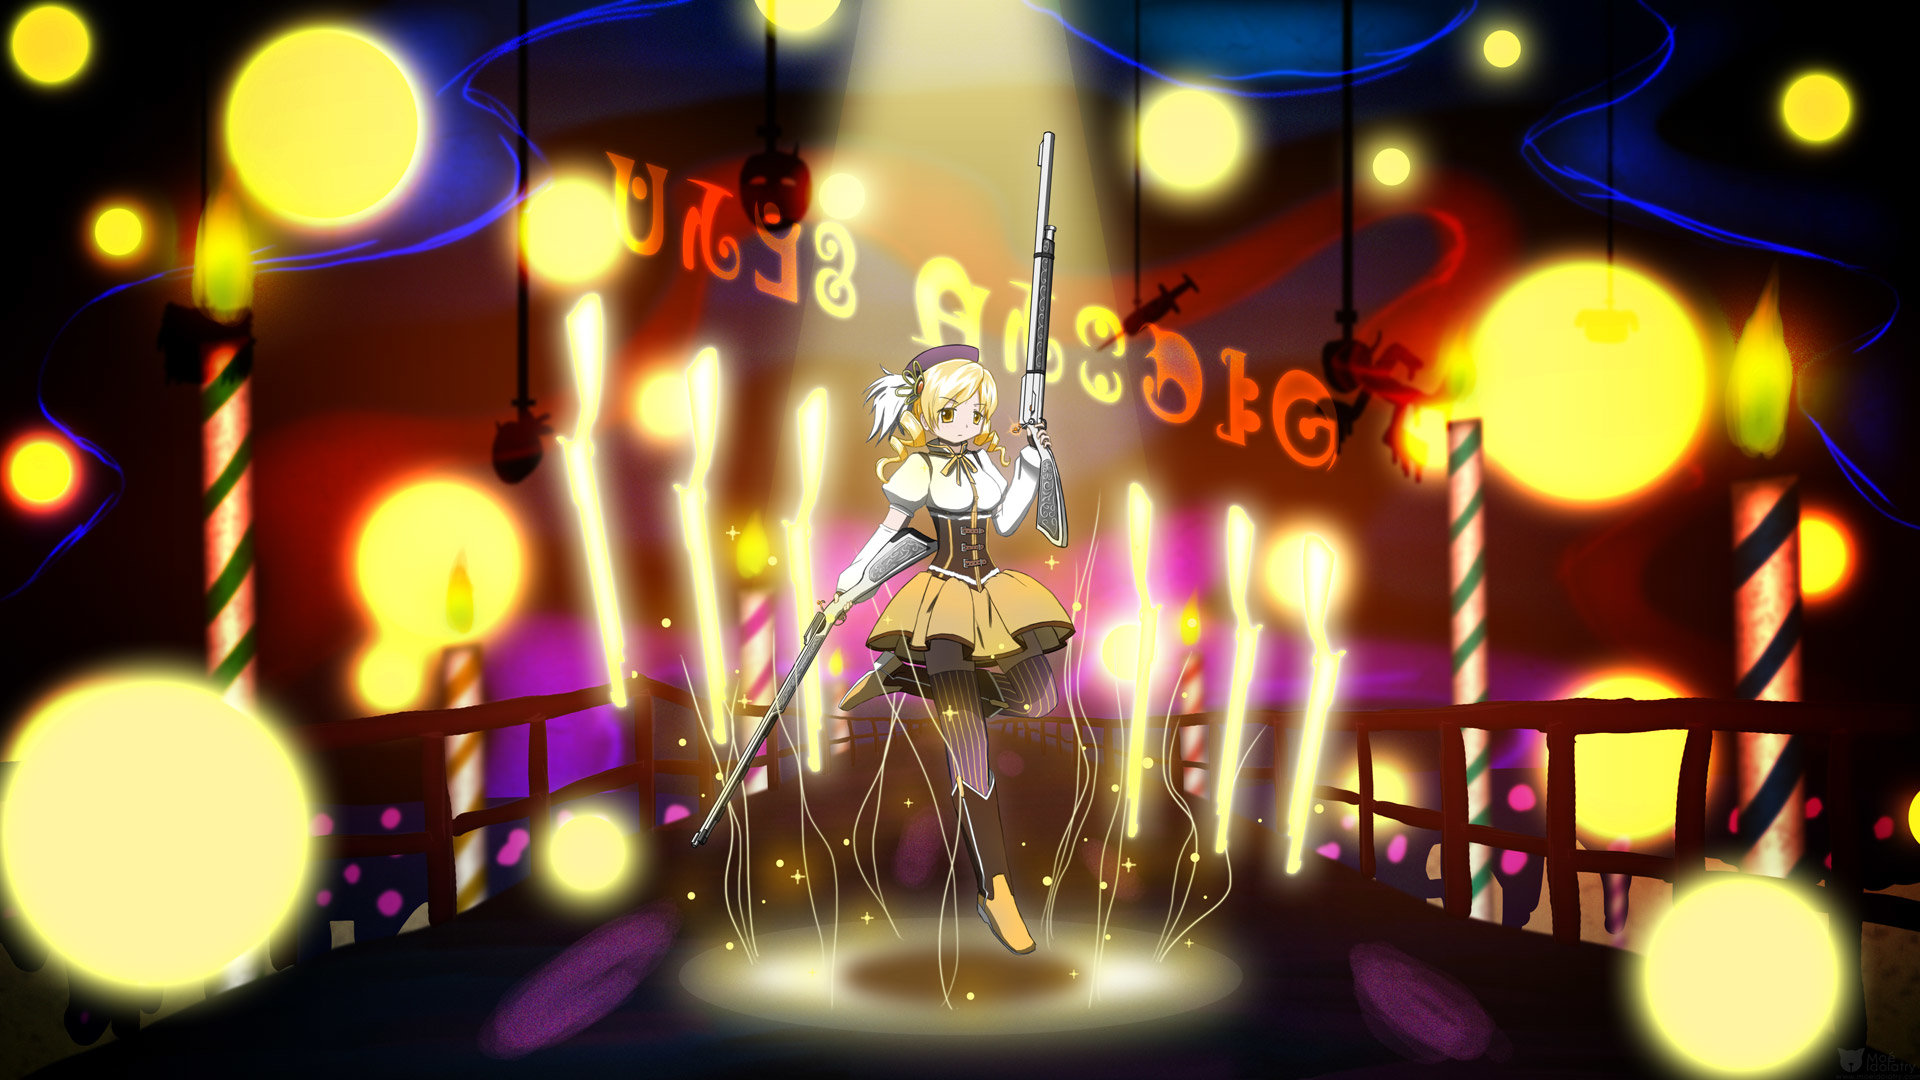 Awesome Mami Tomoe free wallpaper ID:32431 for hd 1920x1080 desktop